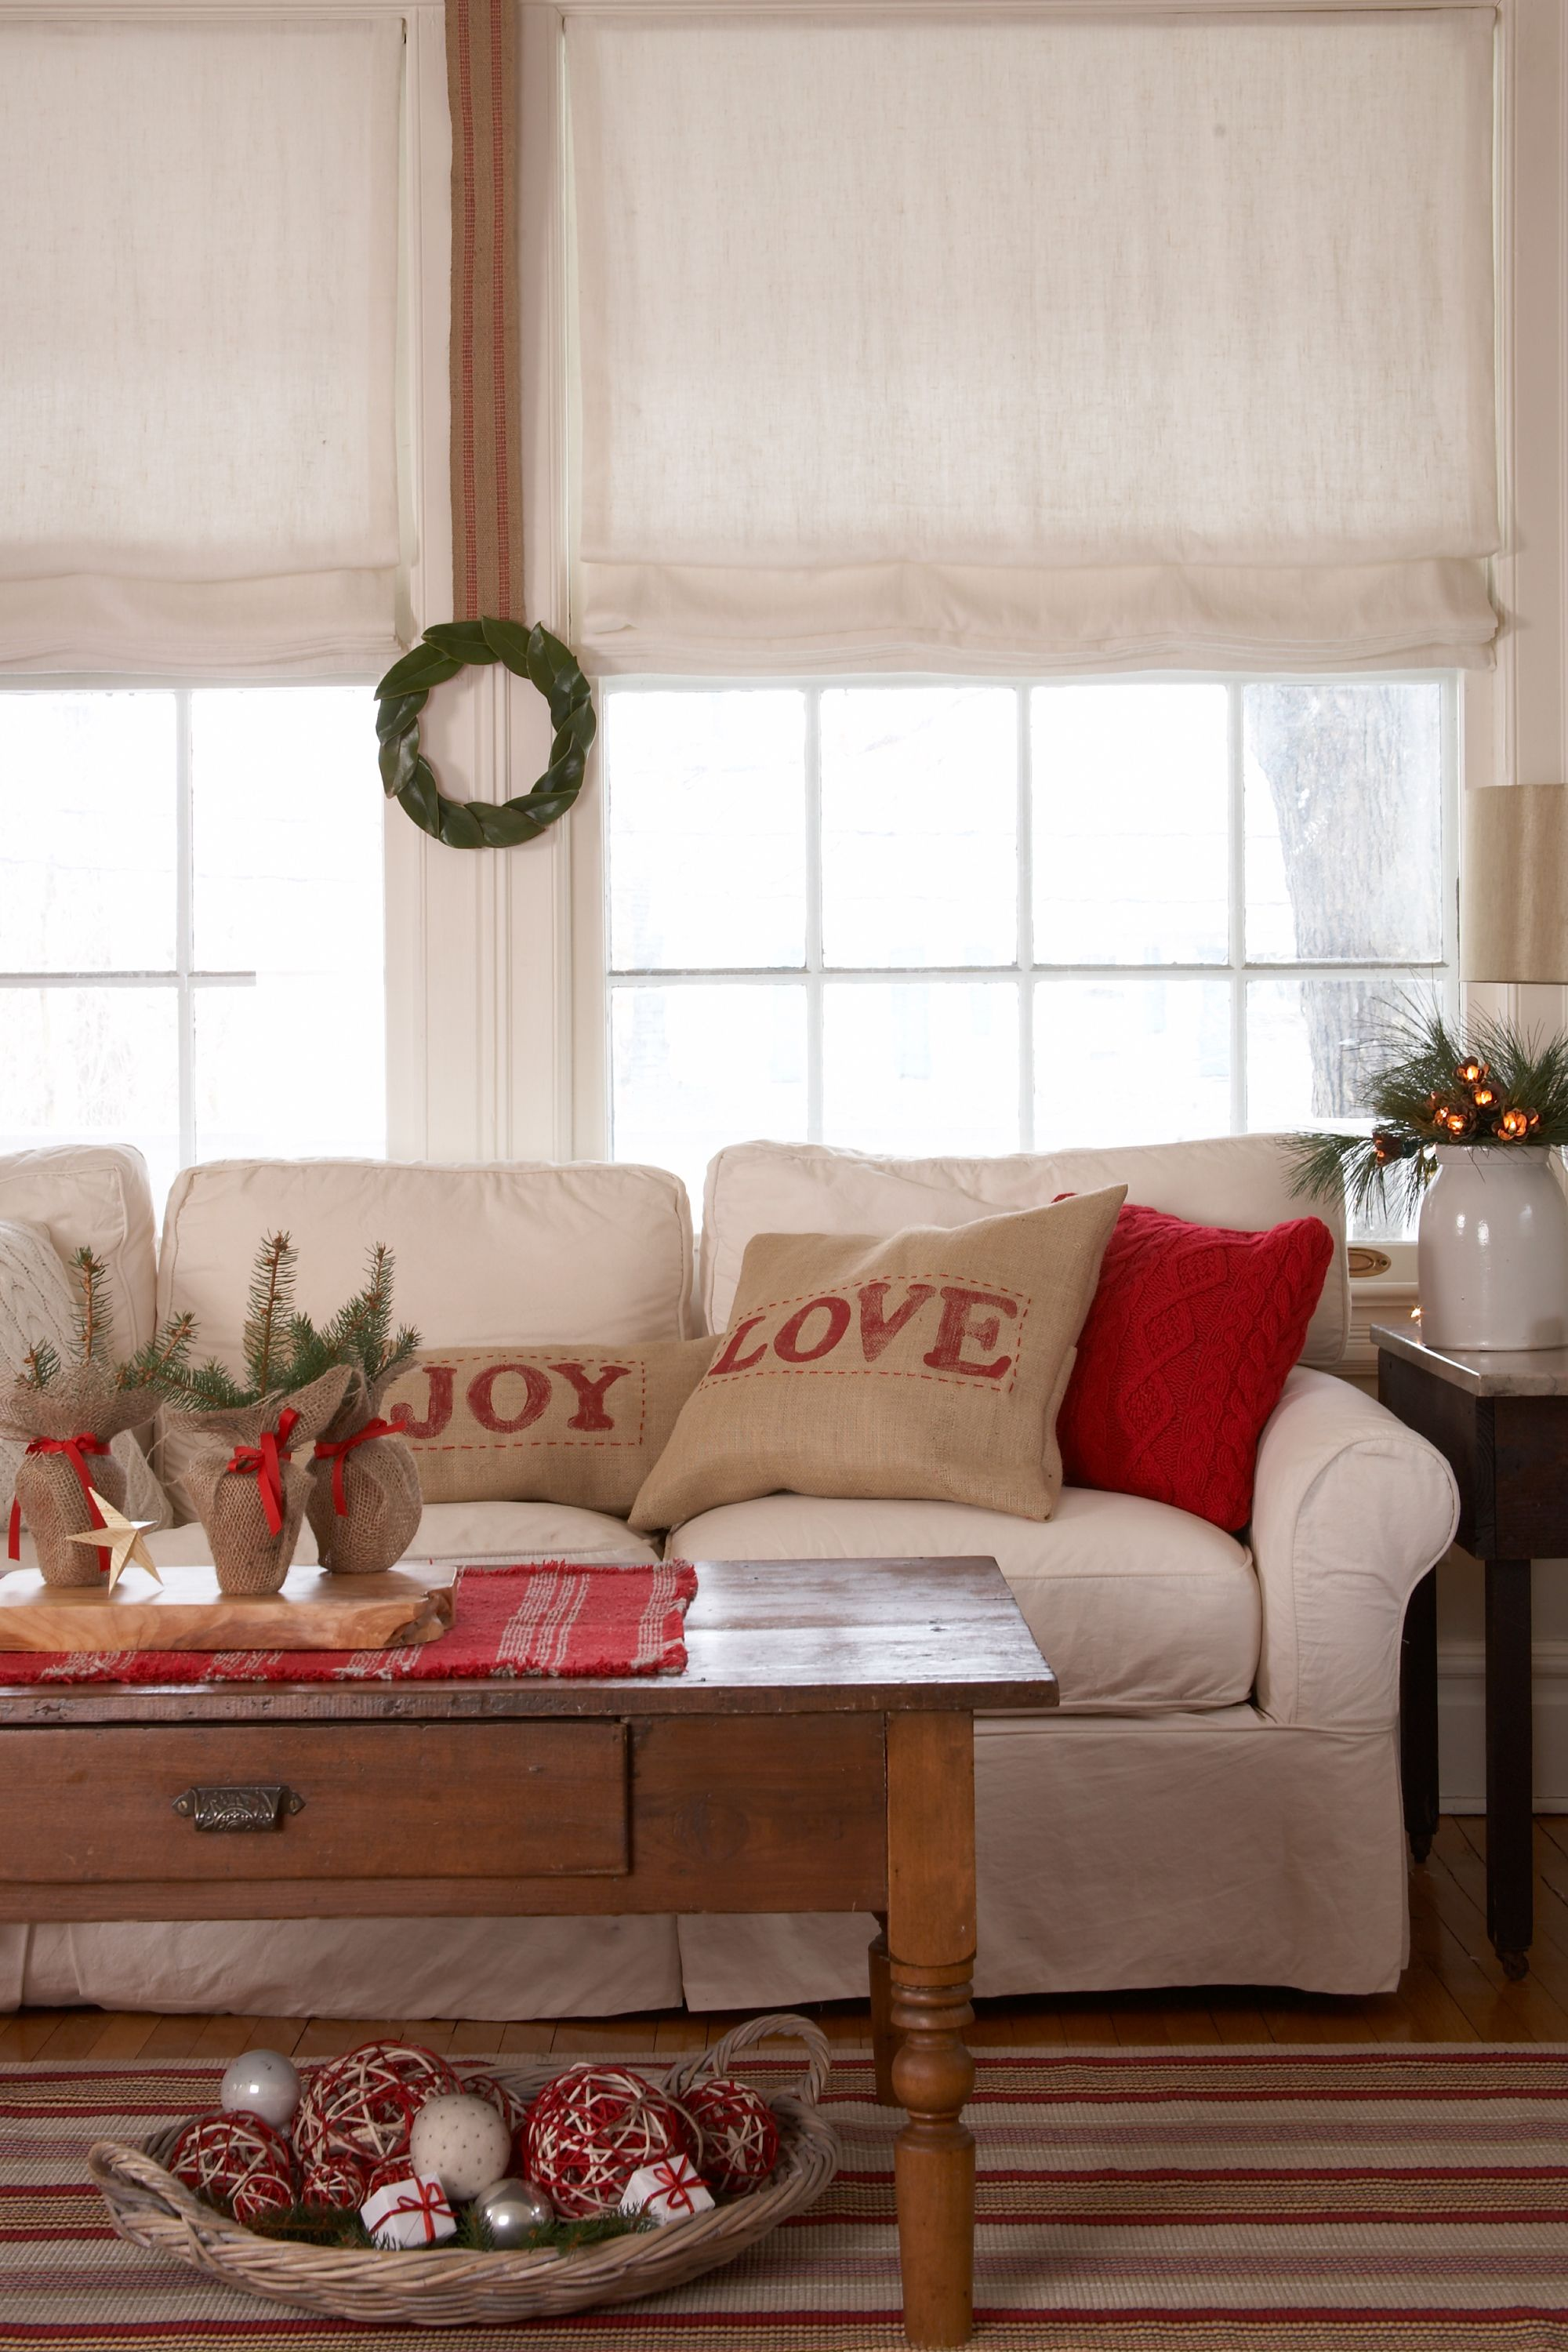 How to Declutter Your Home for Holiday Guests In Under 15 Minutes